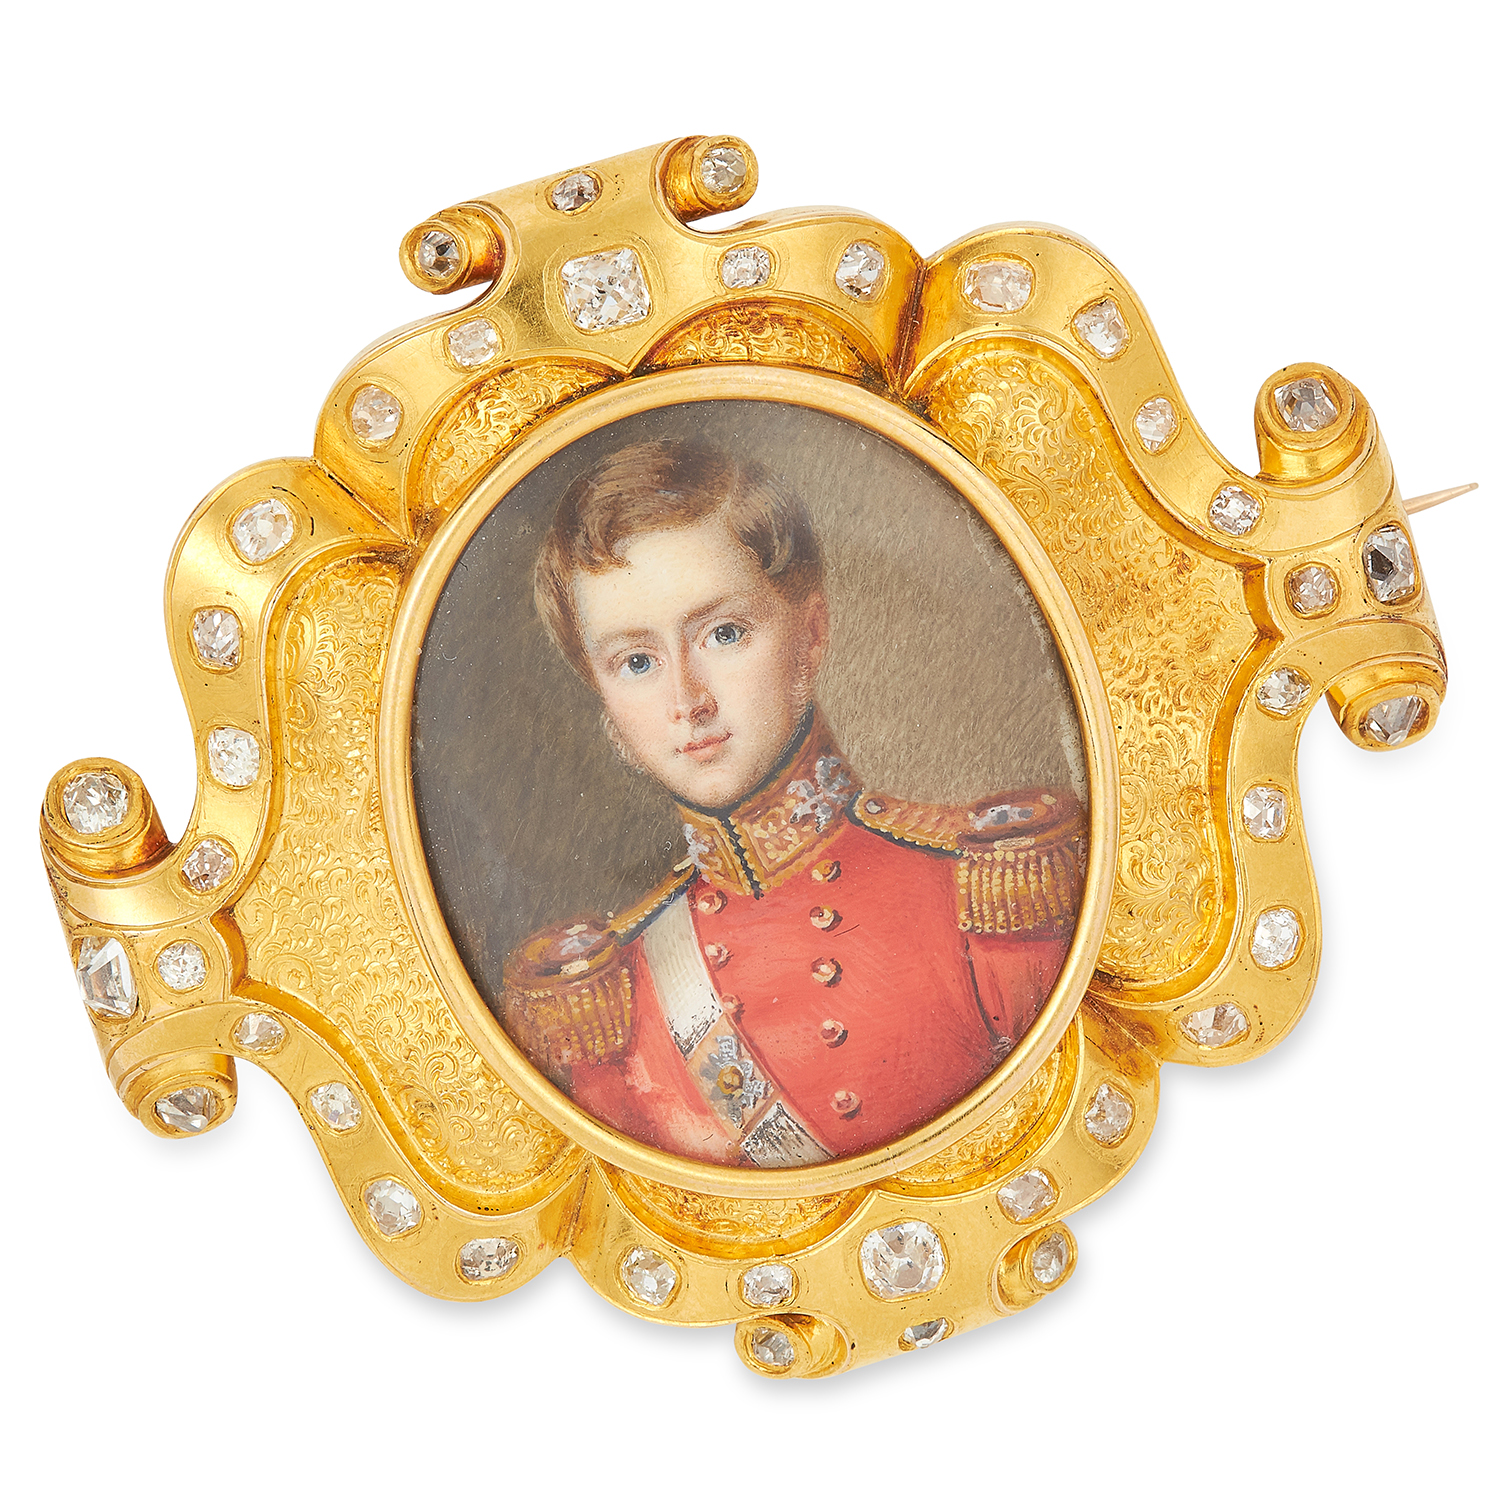 Los 199 - ANTIQUE DIAMOND PAINTED MINIATURE BROOCH comprising of a miniature of a gentleman in regimental